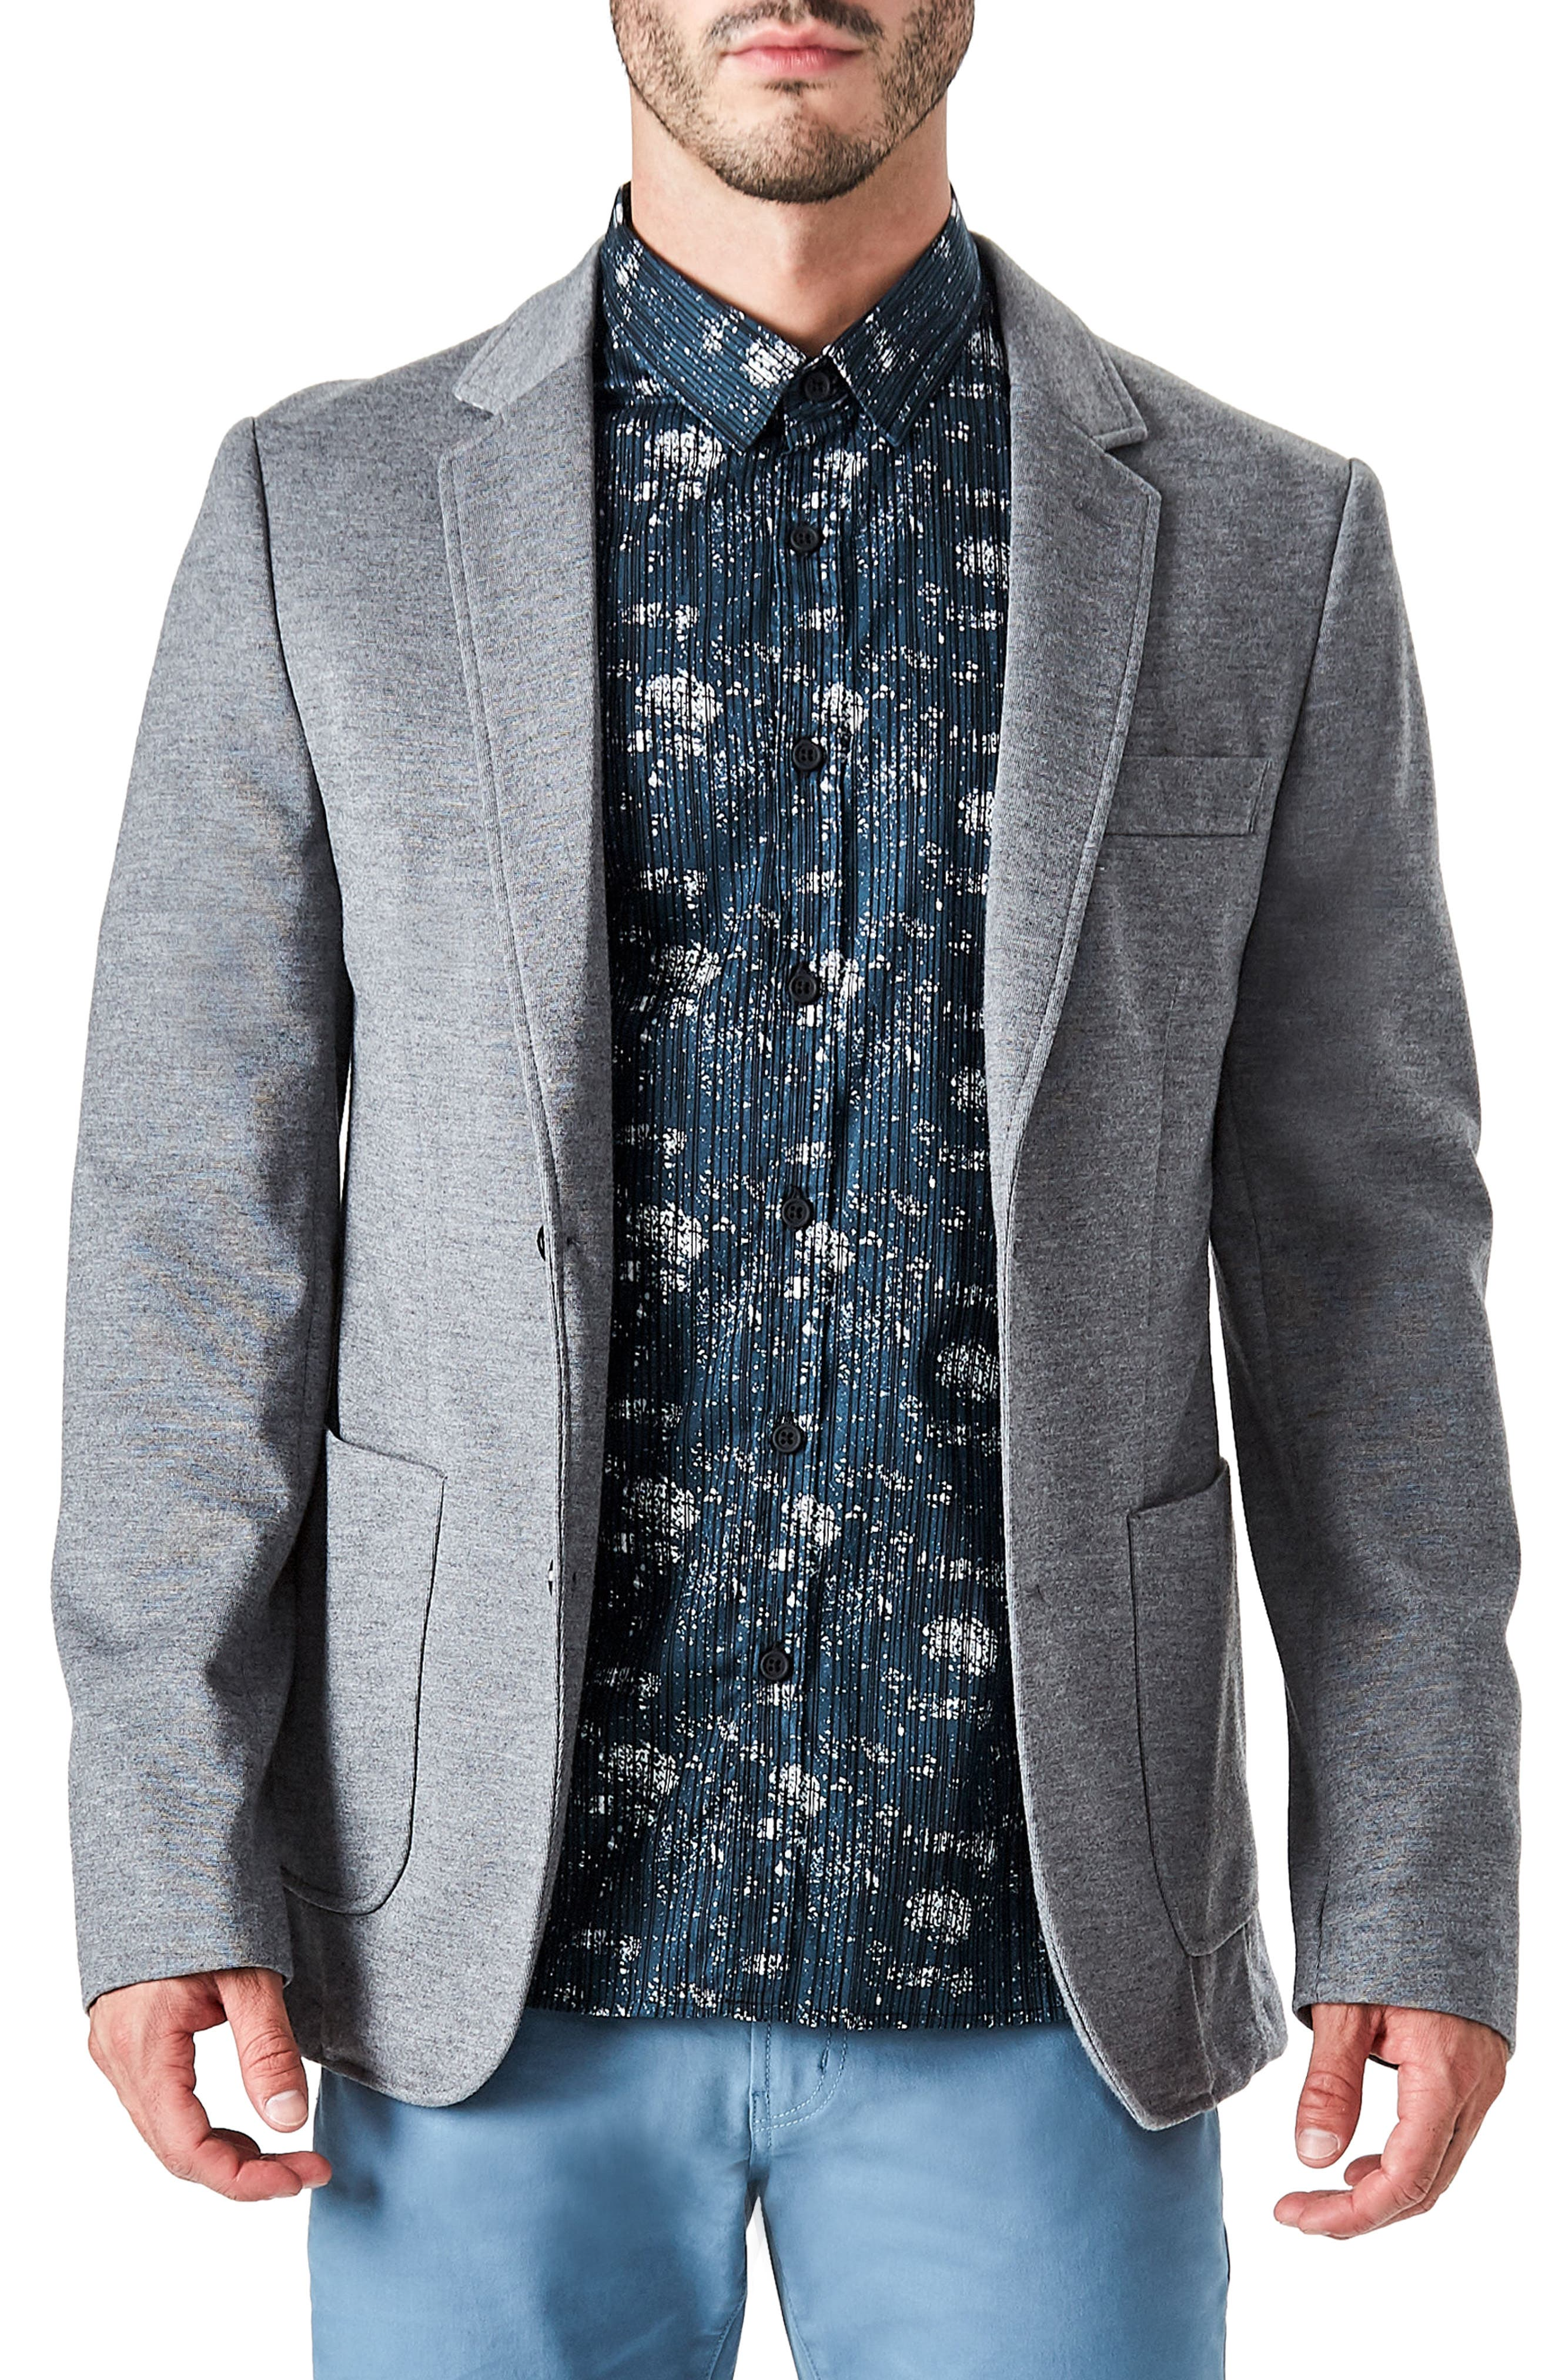 Urbino Casual Blazer,                             Main thumbnail 1, color,                             Grey